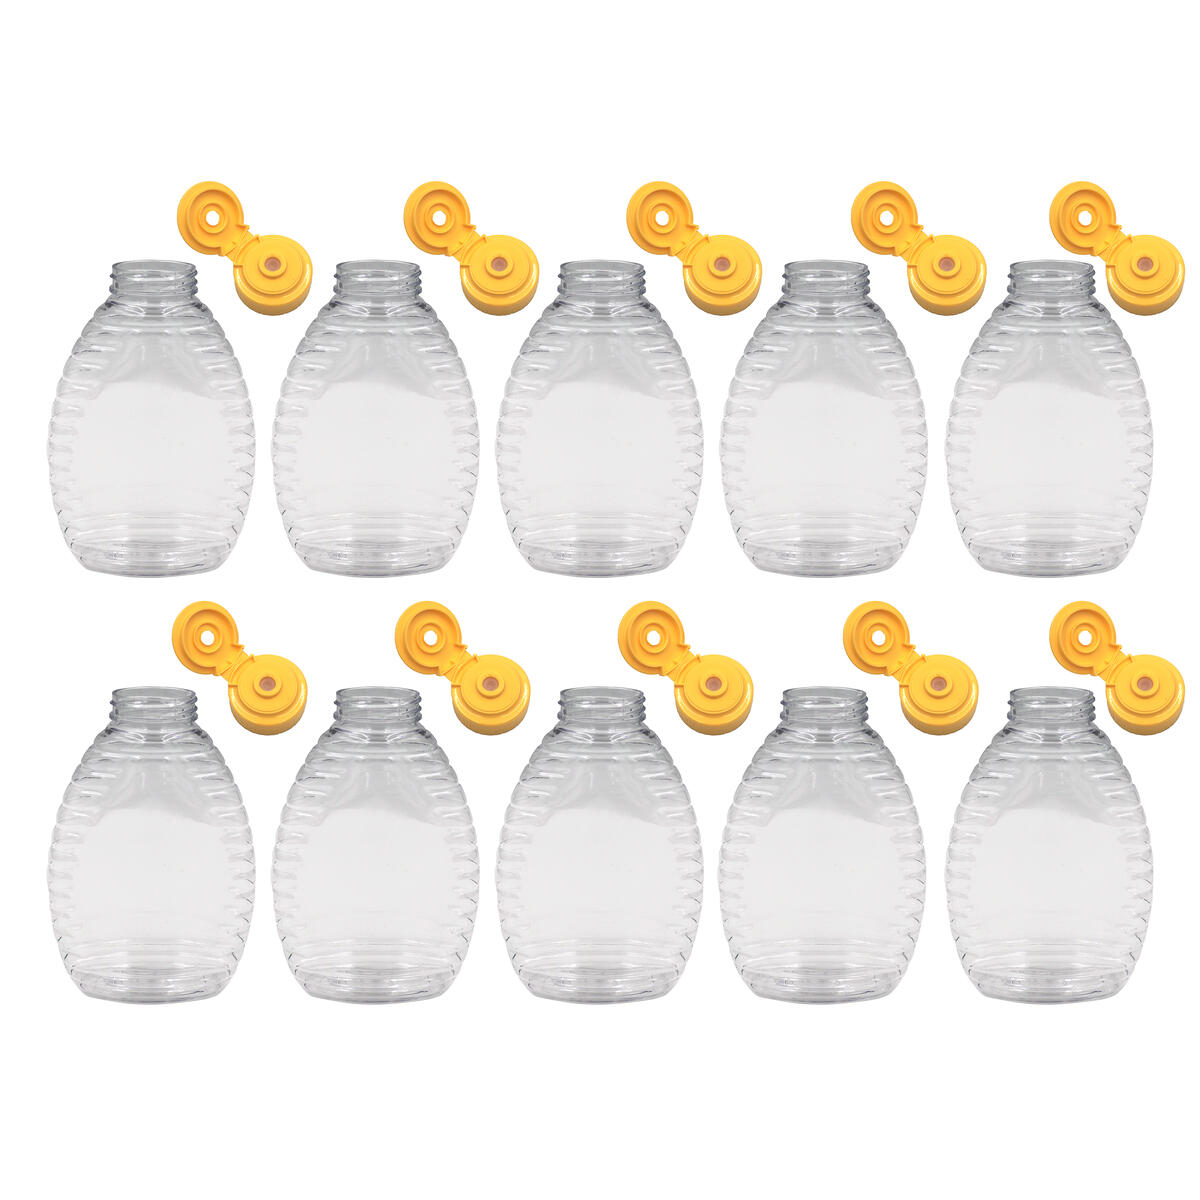 Alpha Additions Plastic Honey Bottle Jars | 10 Pack 16oz Reusable Plastic Honey Squeeze Bottle